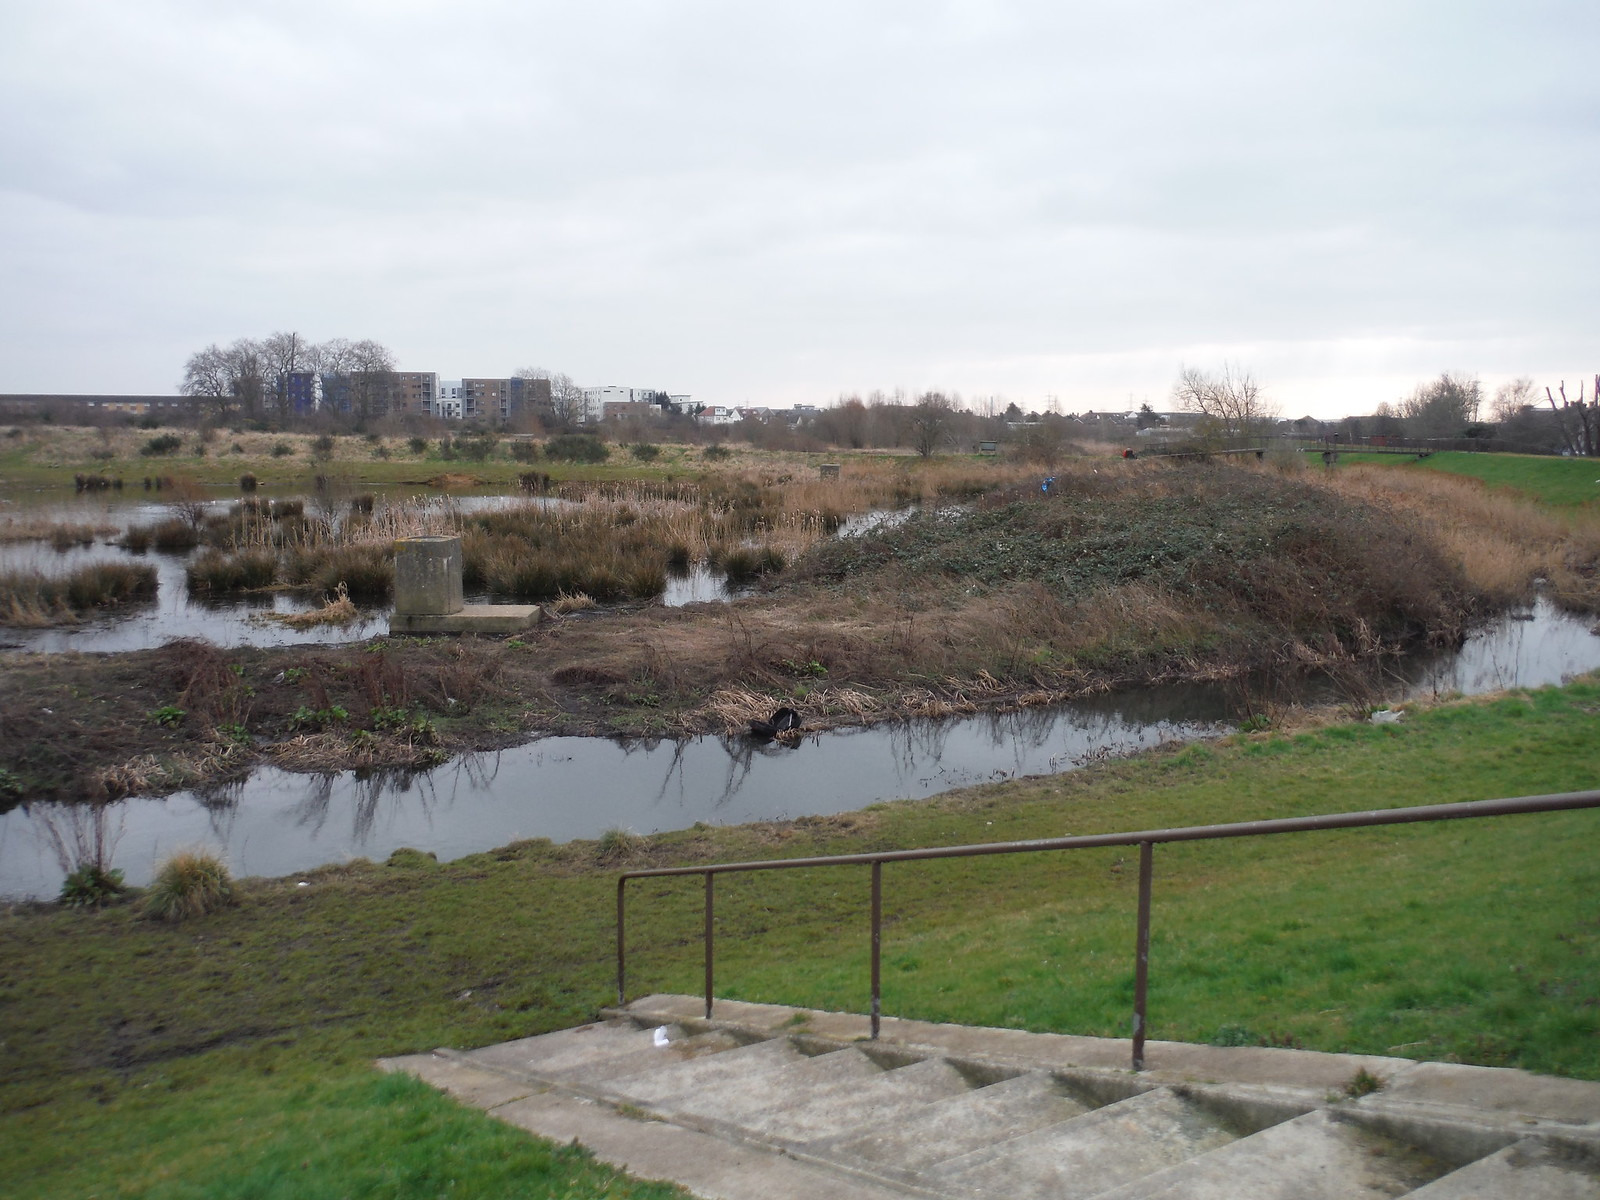 Wantz Stream and Pond SWC Short Walk 33 - Dagenham Parks, Rivers and Ponds